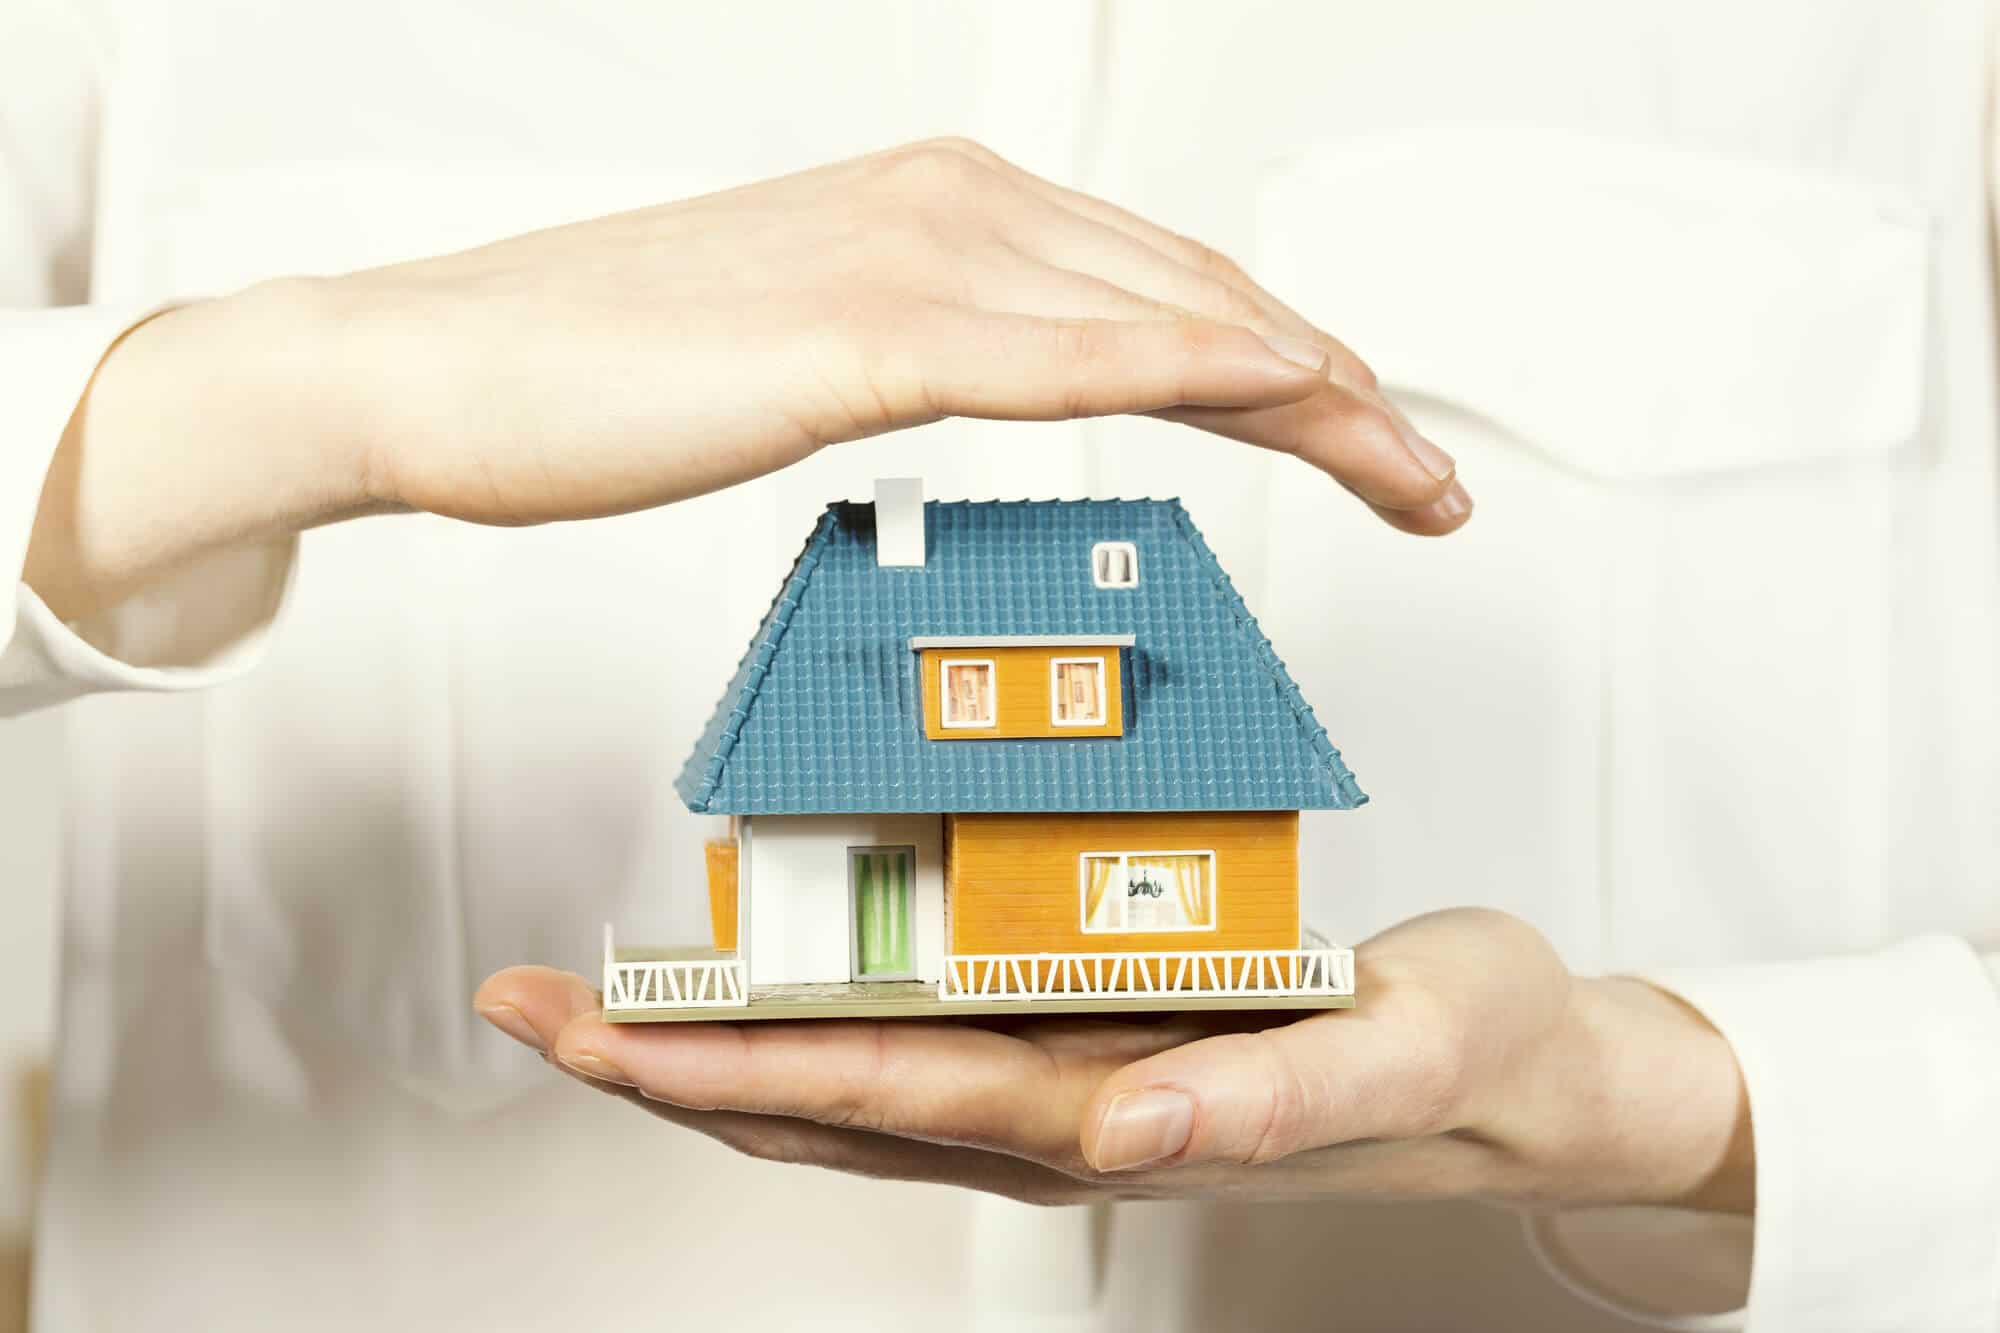 florida insurance laws, protecting a home